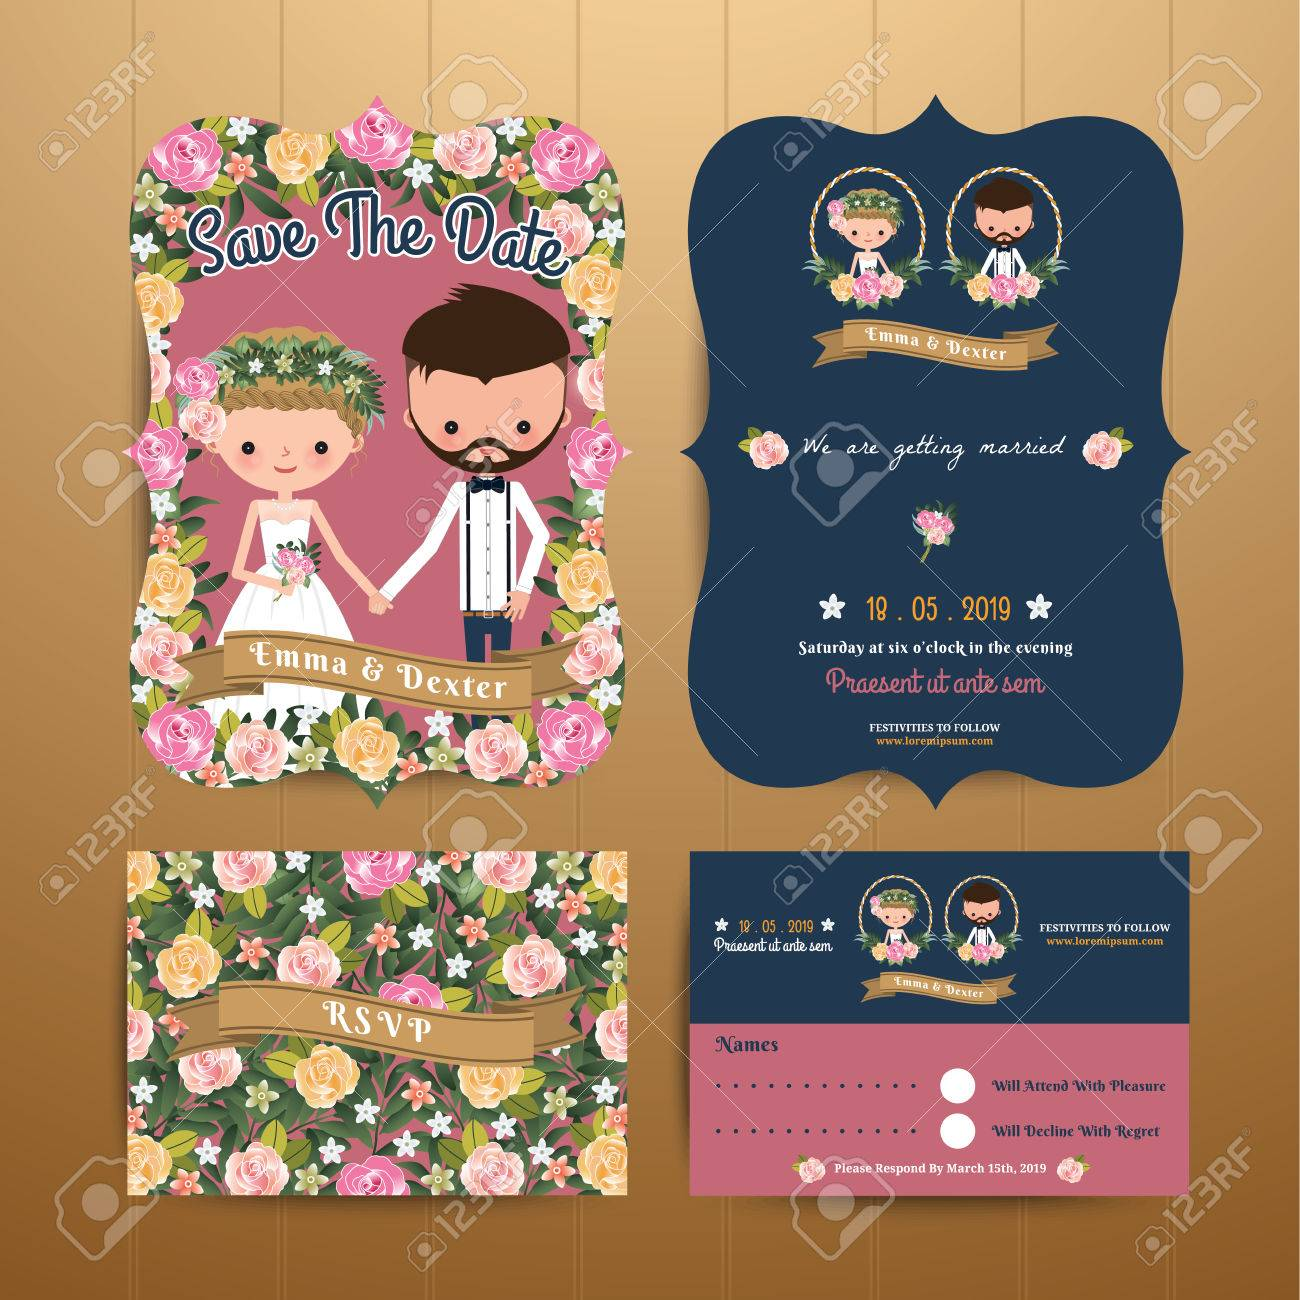 Vintage Rustic Blossom Flowers Cartoon Couple Wedding Invitation